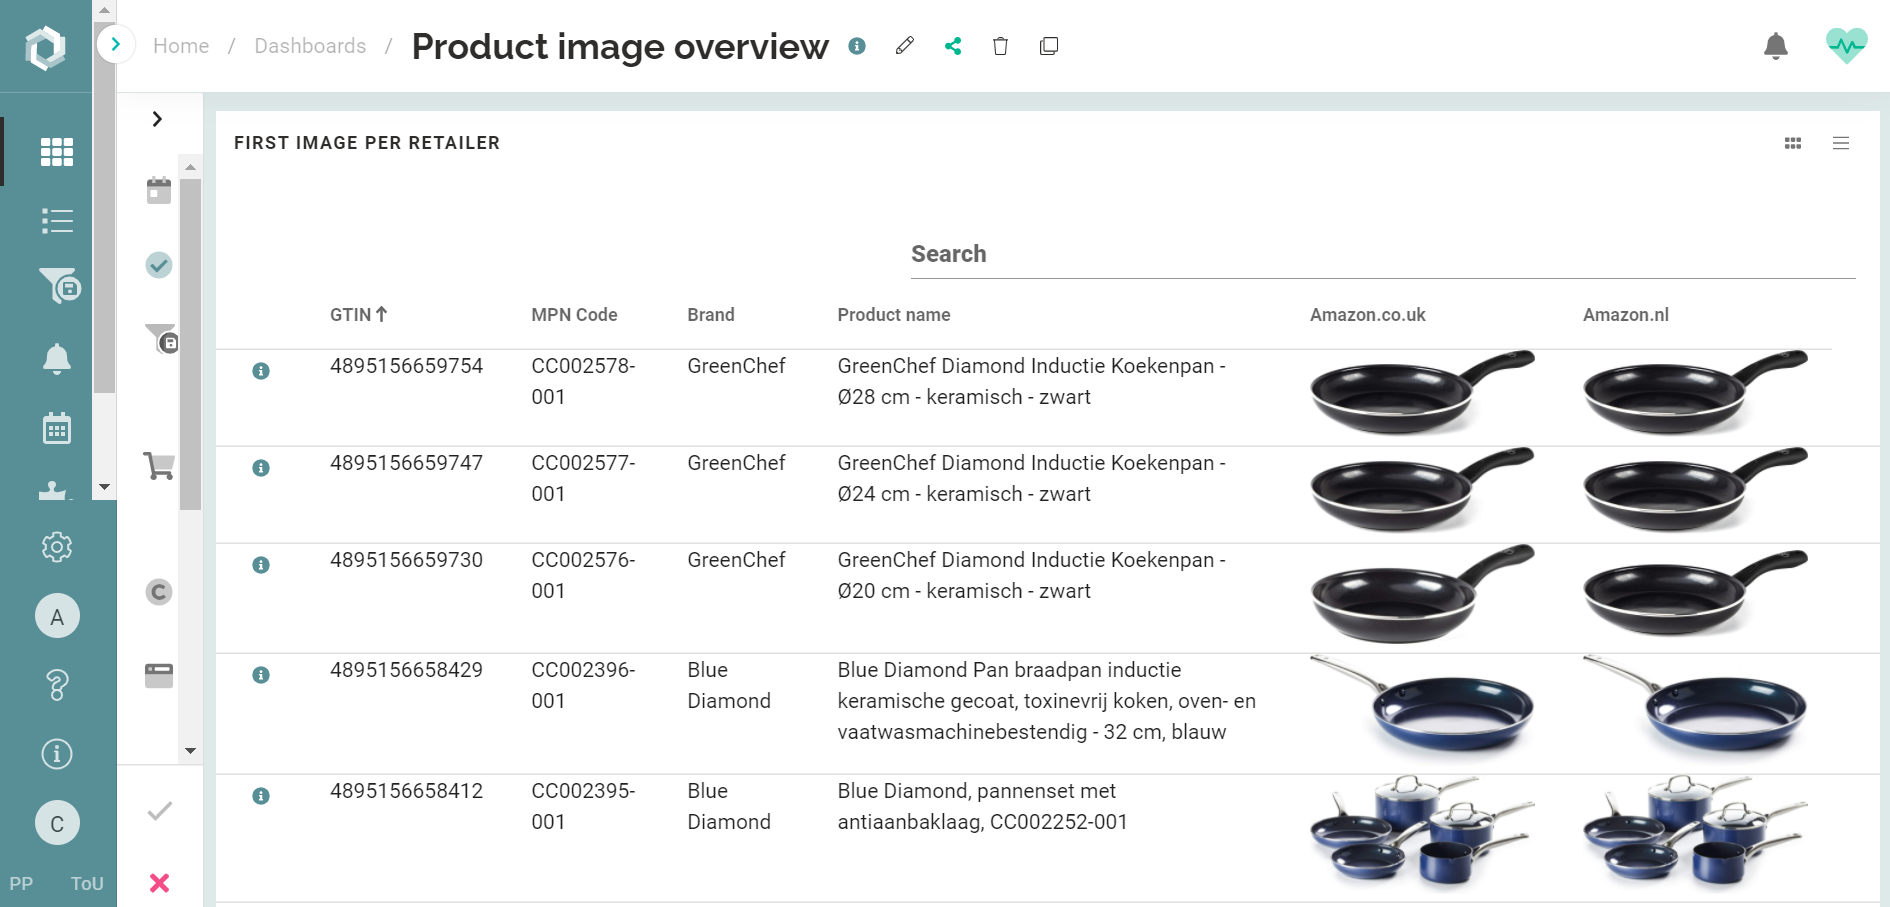 marketplaces product images